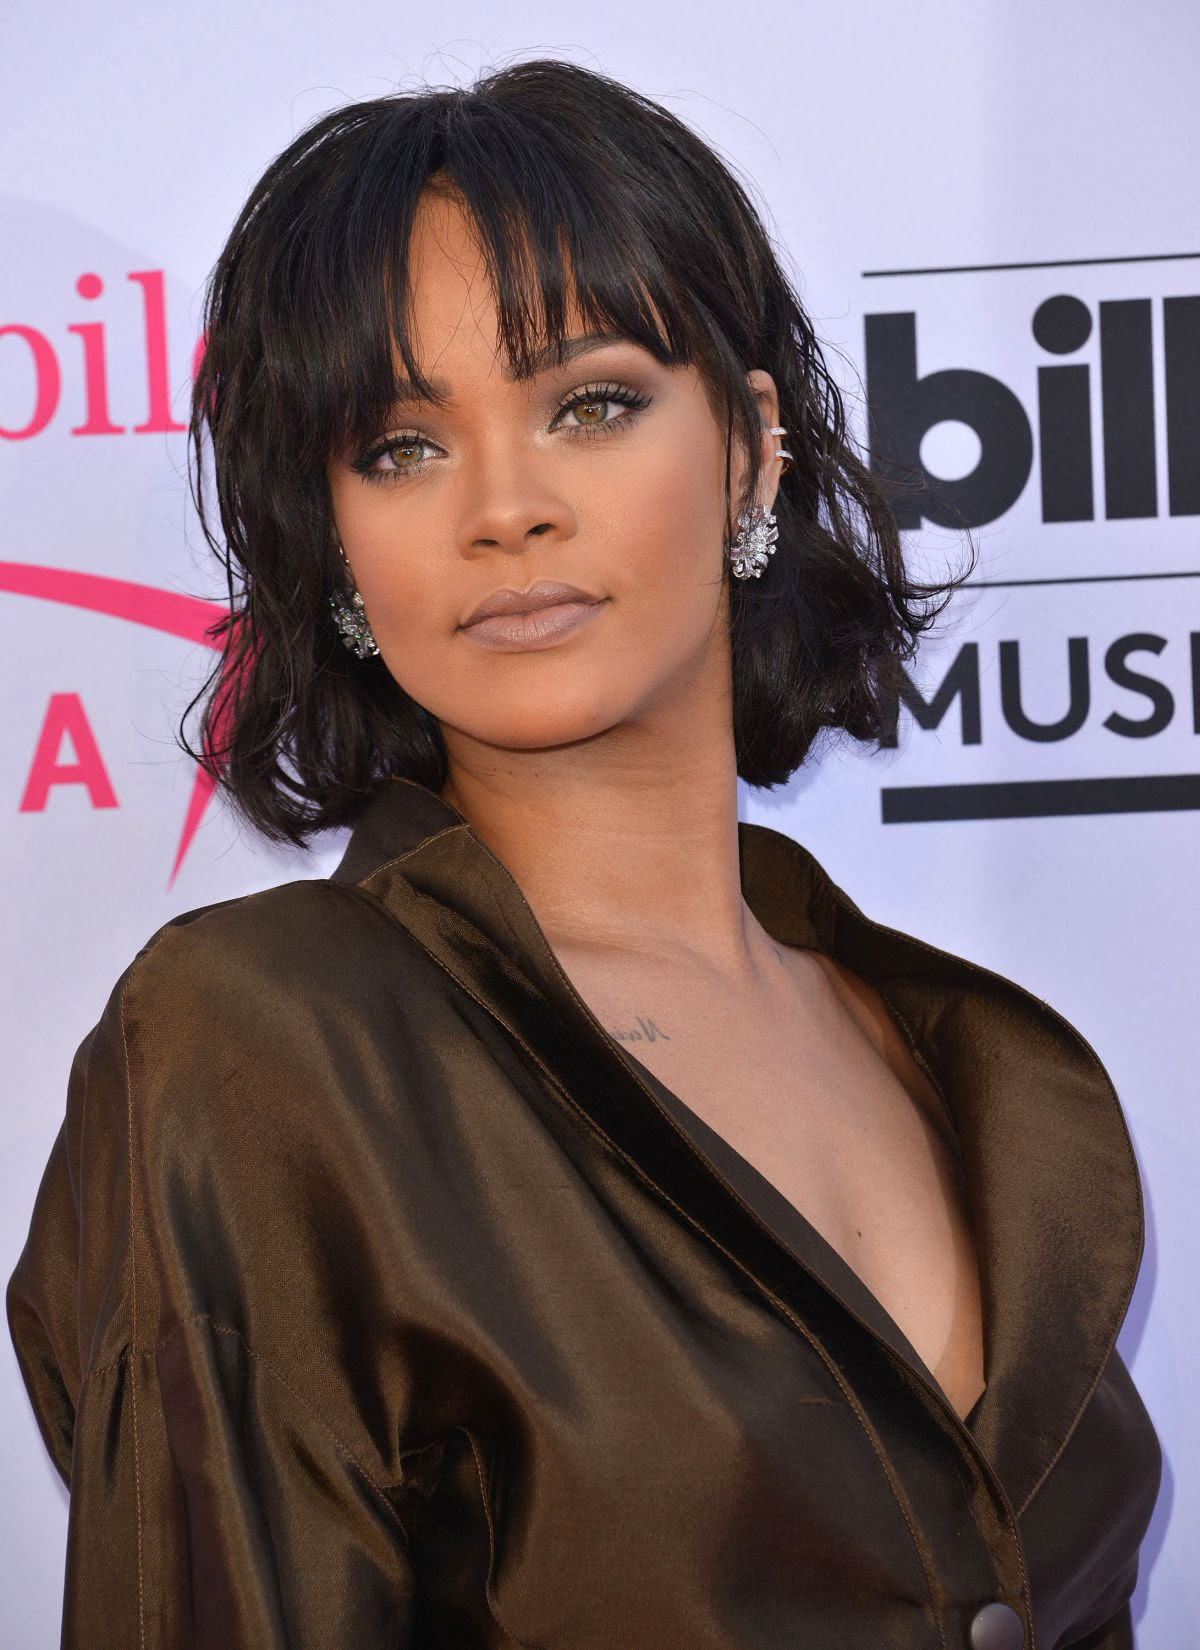 RIHANNA at 2016 Billboard Music Awards in Las Vegas 05/22/2016